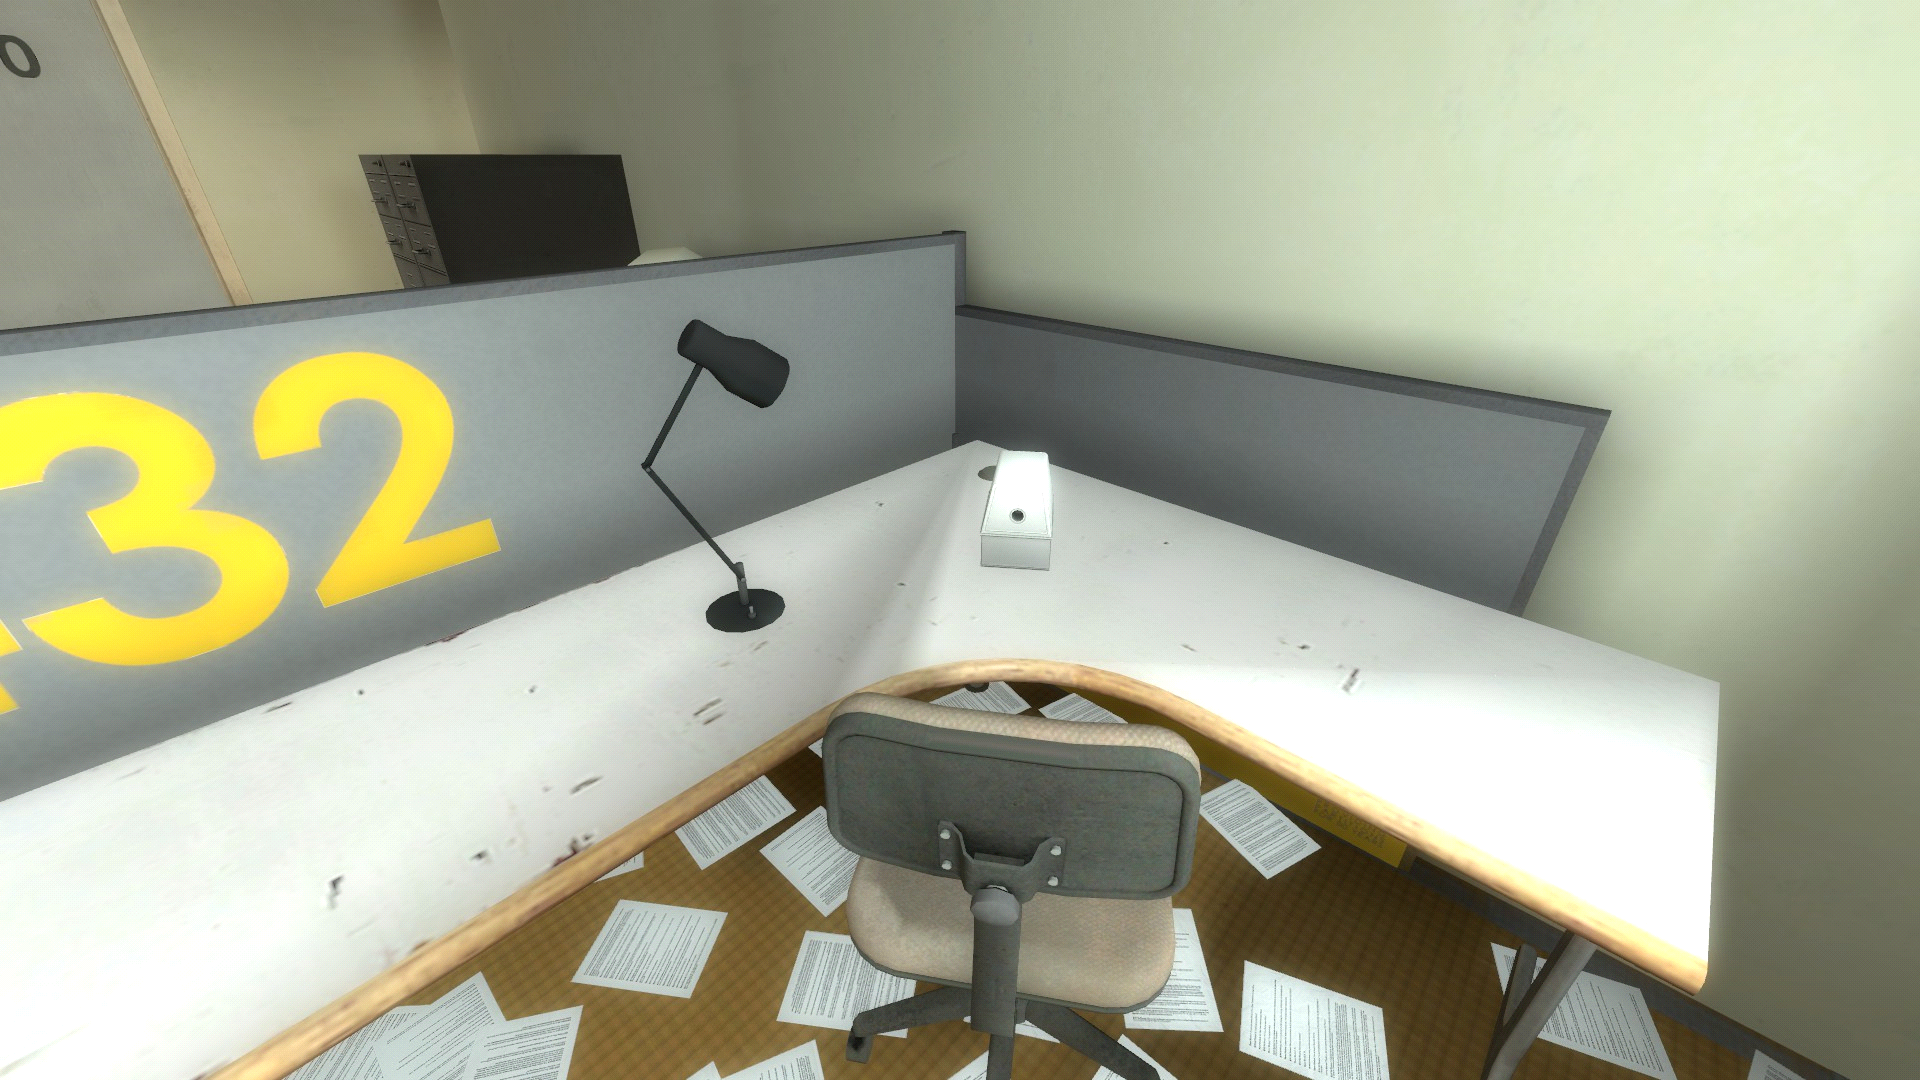 The Stanley Parable Gameplay